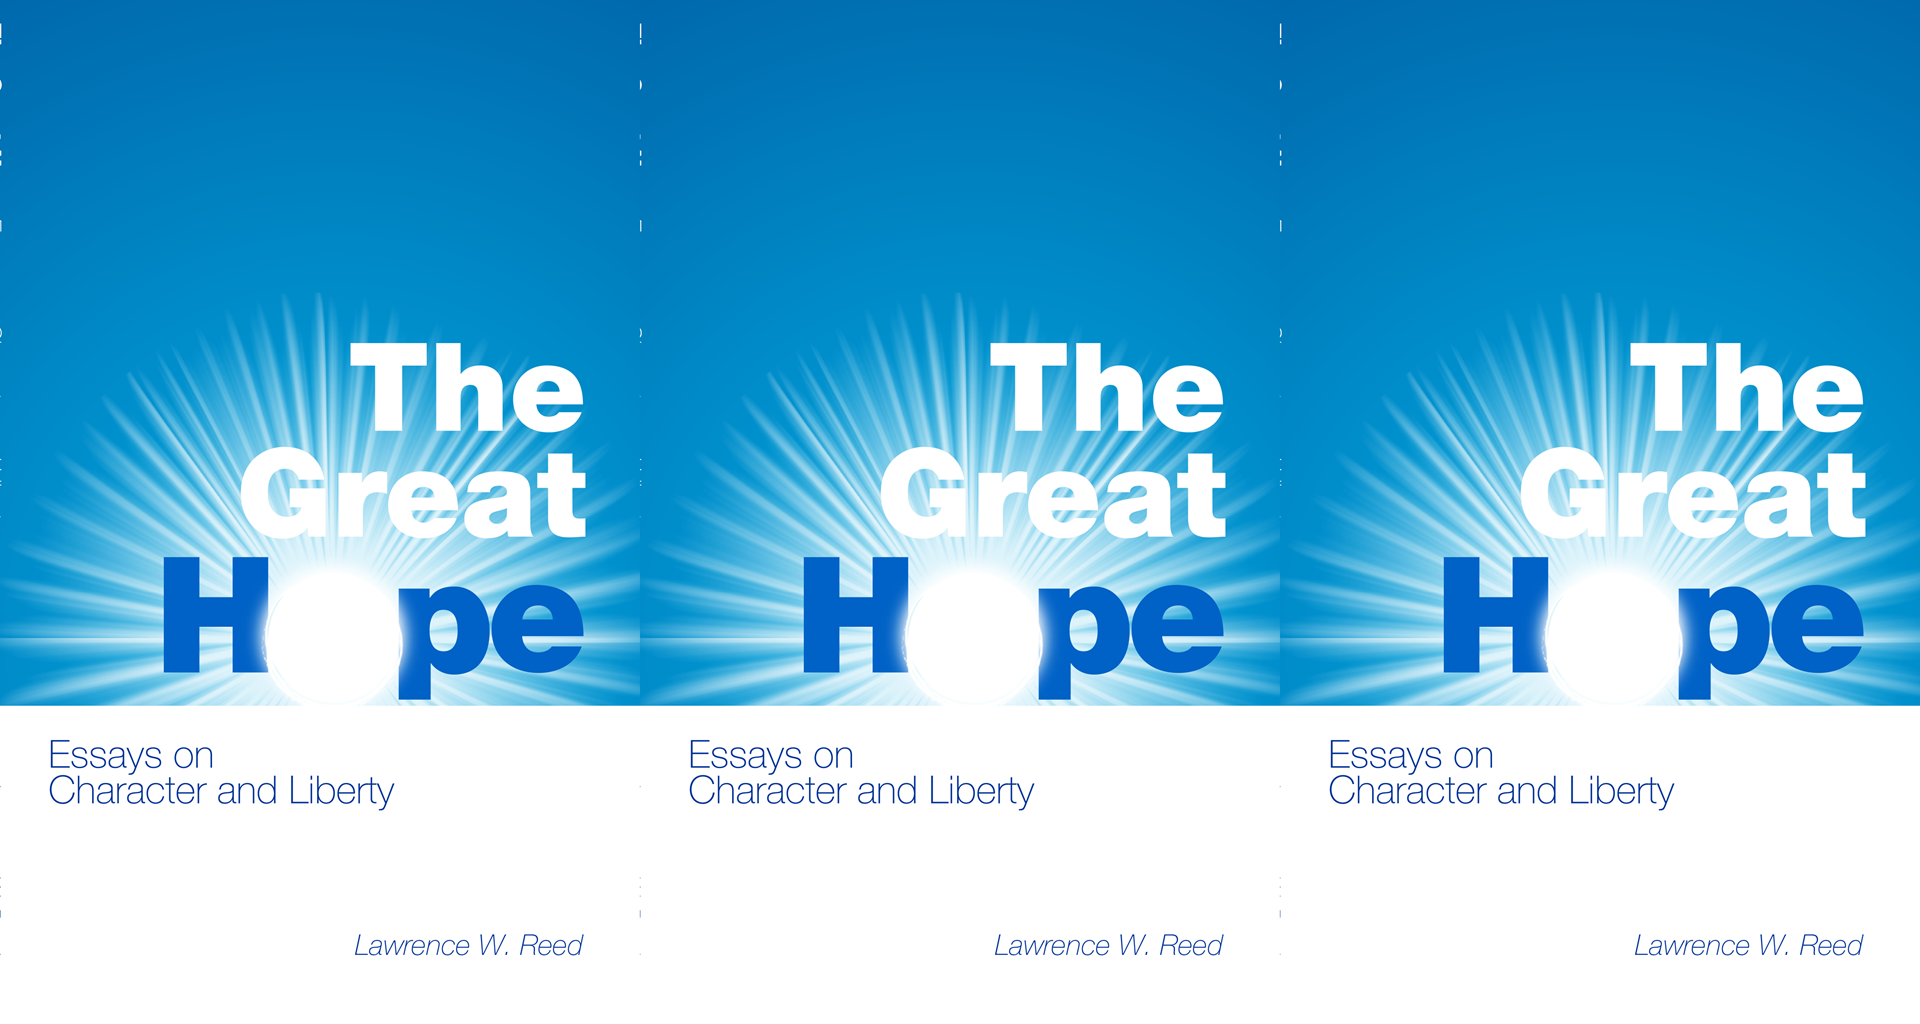 Interesting Persuasive Essay Topics For High School Students The Great Hope Essays On Character And Liberty By Lawrence W Reed Thesis Essay Topics also Essay On Healthy Eating Habits The Great Hope Essays On Character And Liberty By Lawrence W Reed  Personal Narrative Essay Examples High School